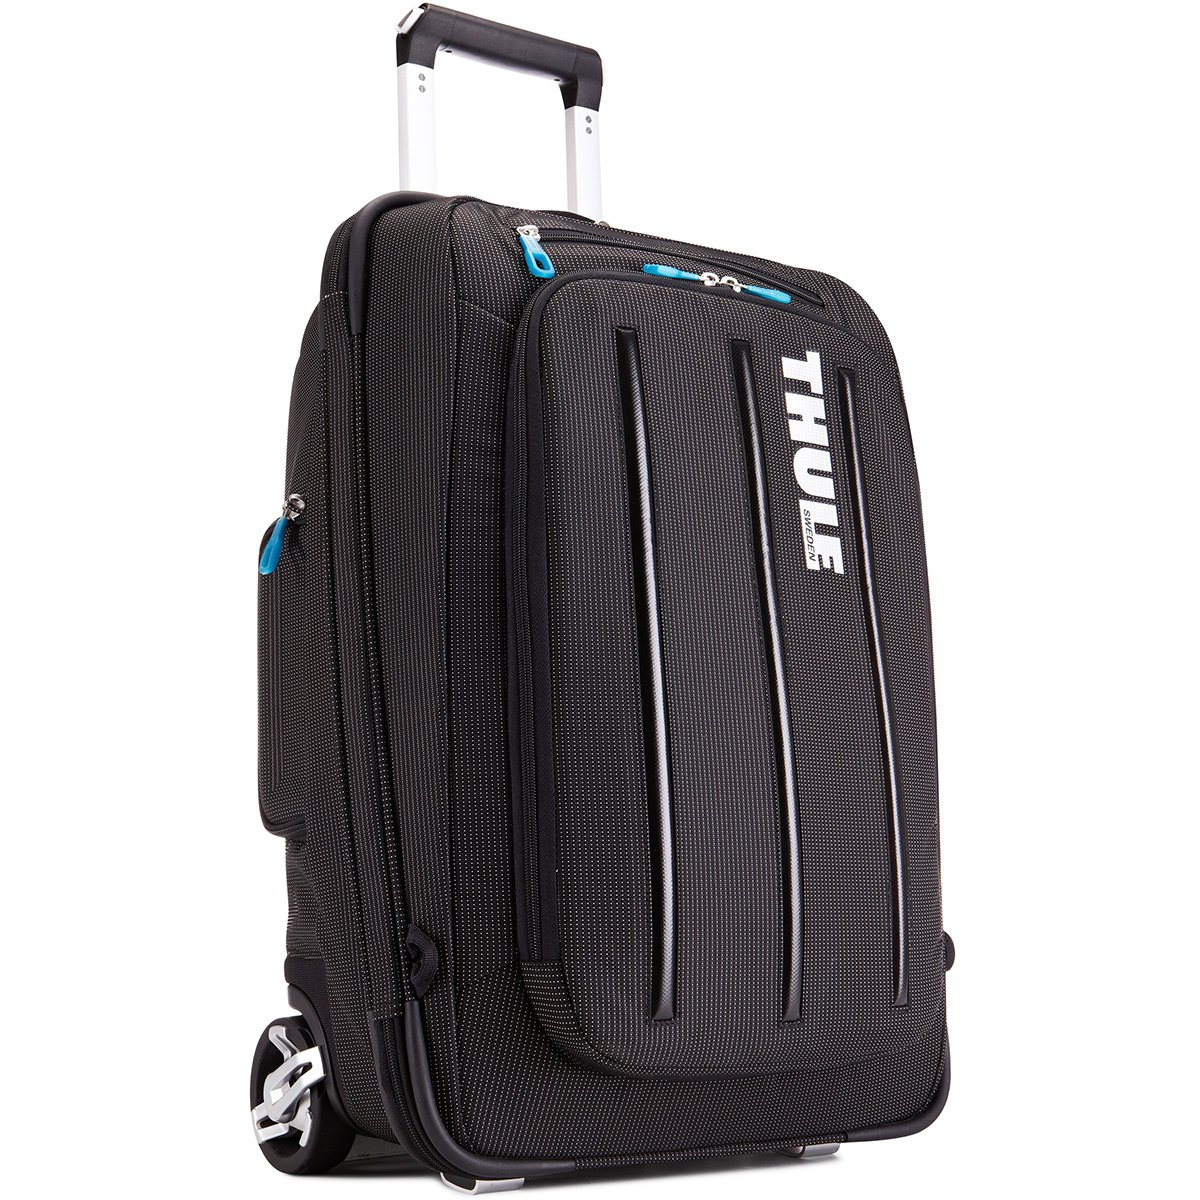 Thule Crossover 38 Liter Rolling Carry-On with Laptop Compartment, Black (TCRU-115)